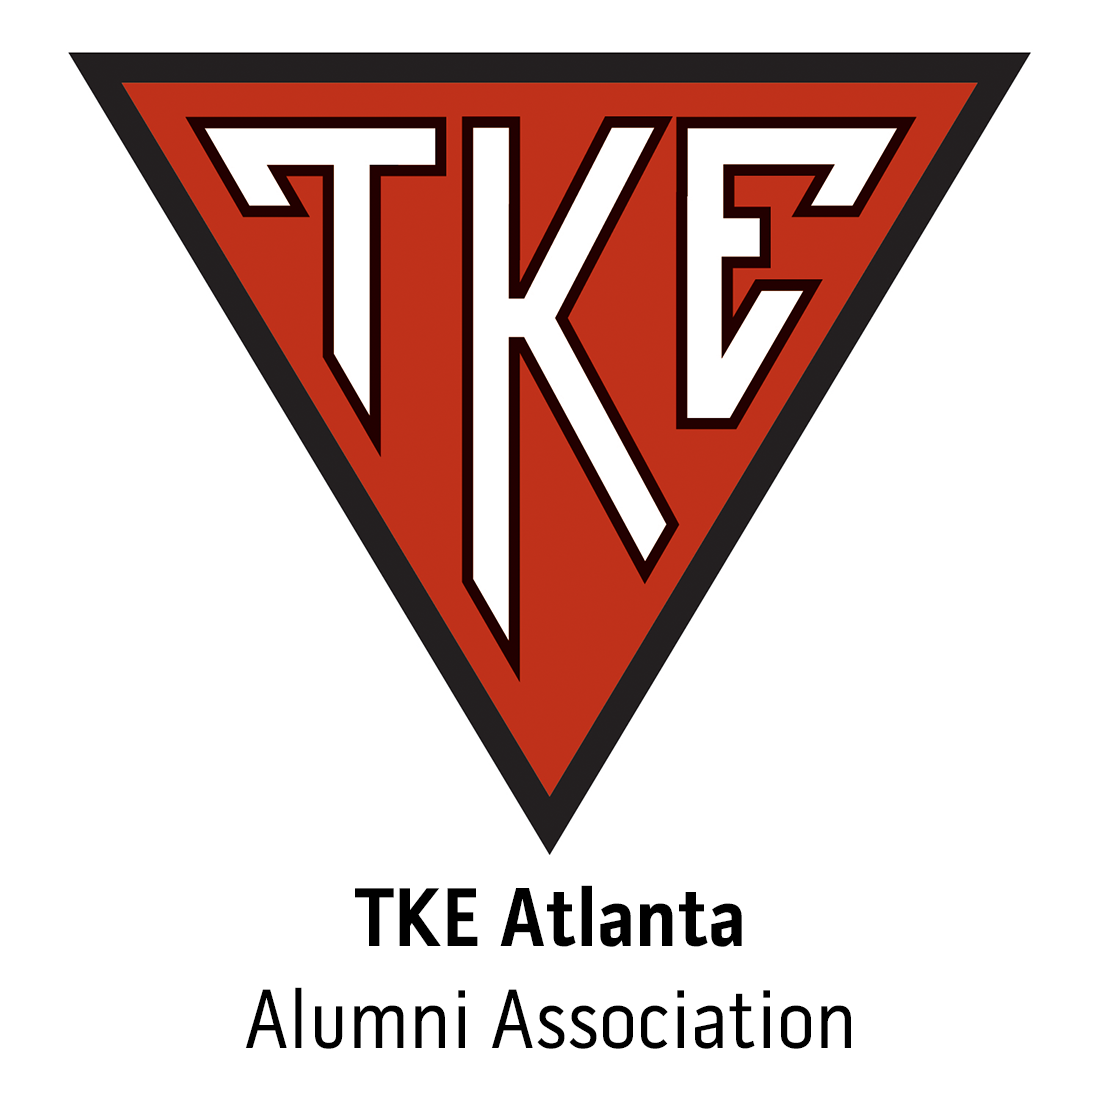 TKE Atlanta Alumni Association Alumni at Atlanta, GA